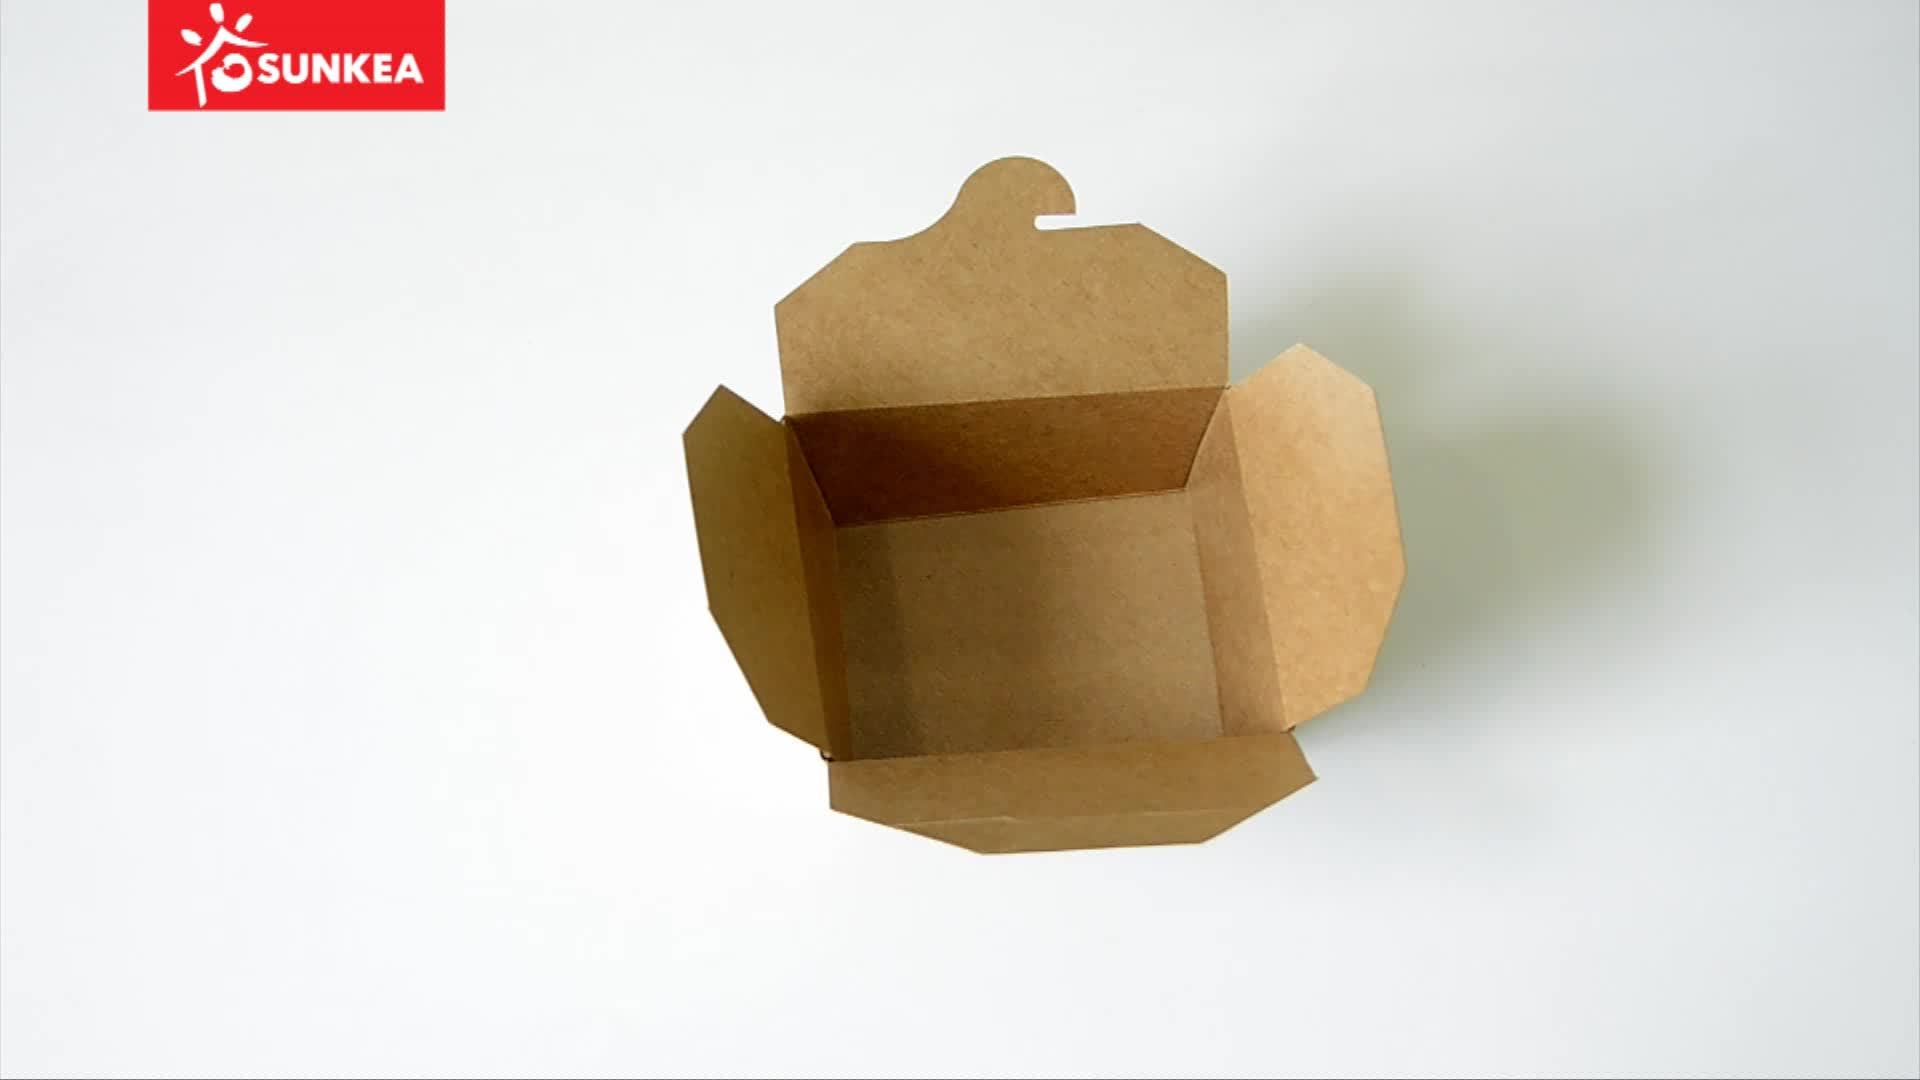 buy kraft paper Nashville wraps has the largest selection of kraft paper shopping bags at bulk wholesale prices brown, white & recycled kraft bags shipped fast.